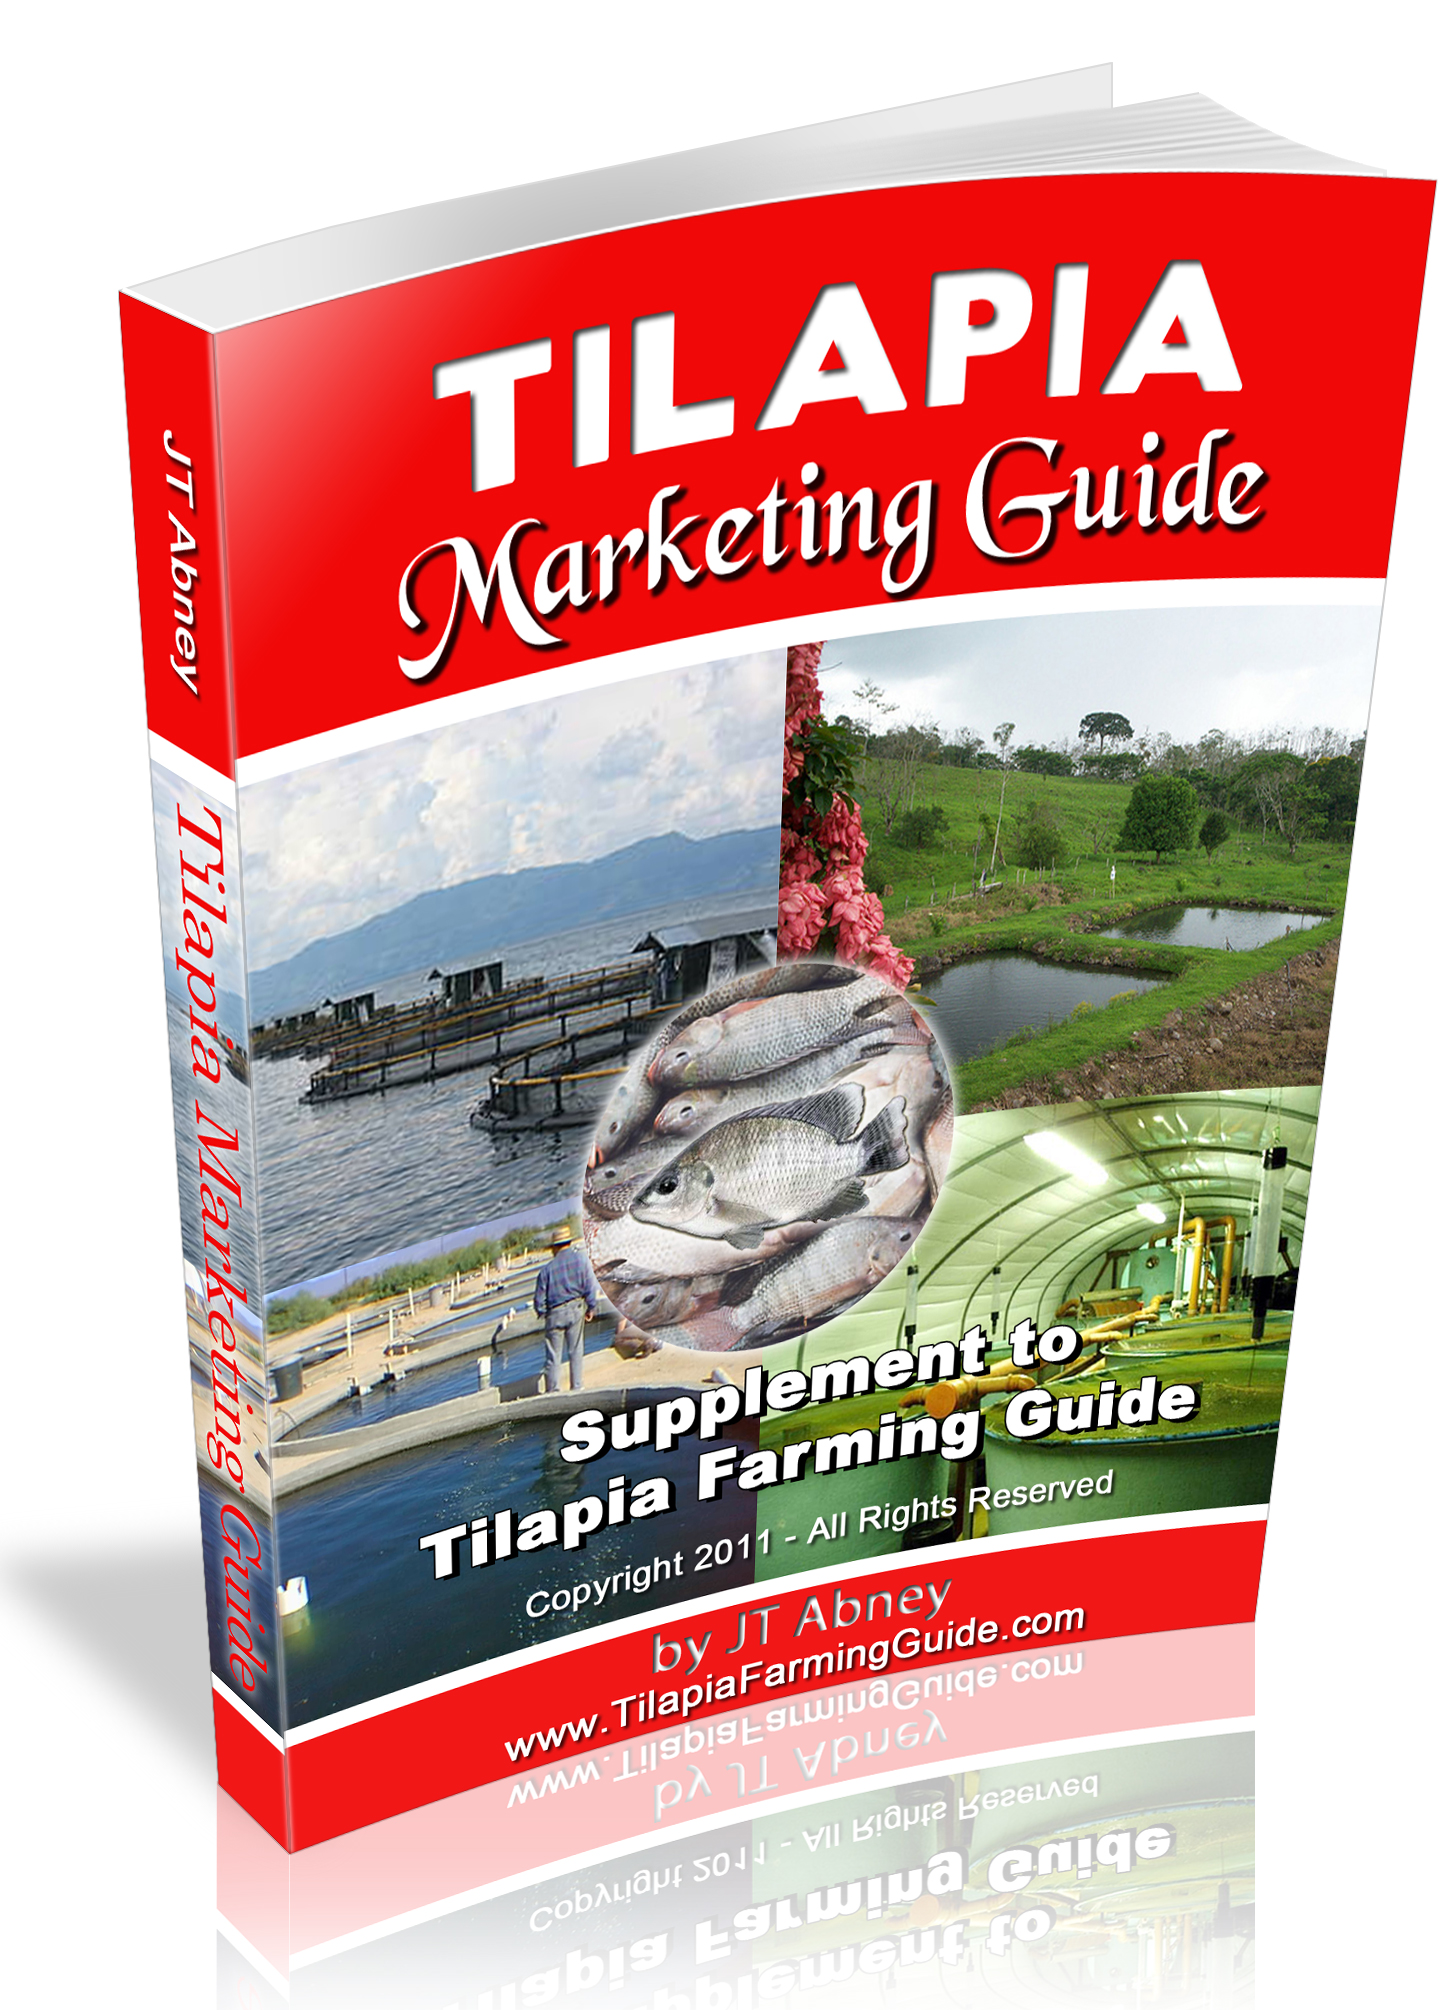 tilapia marketing